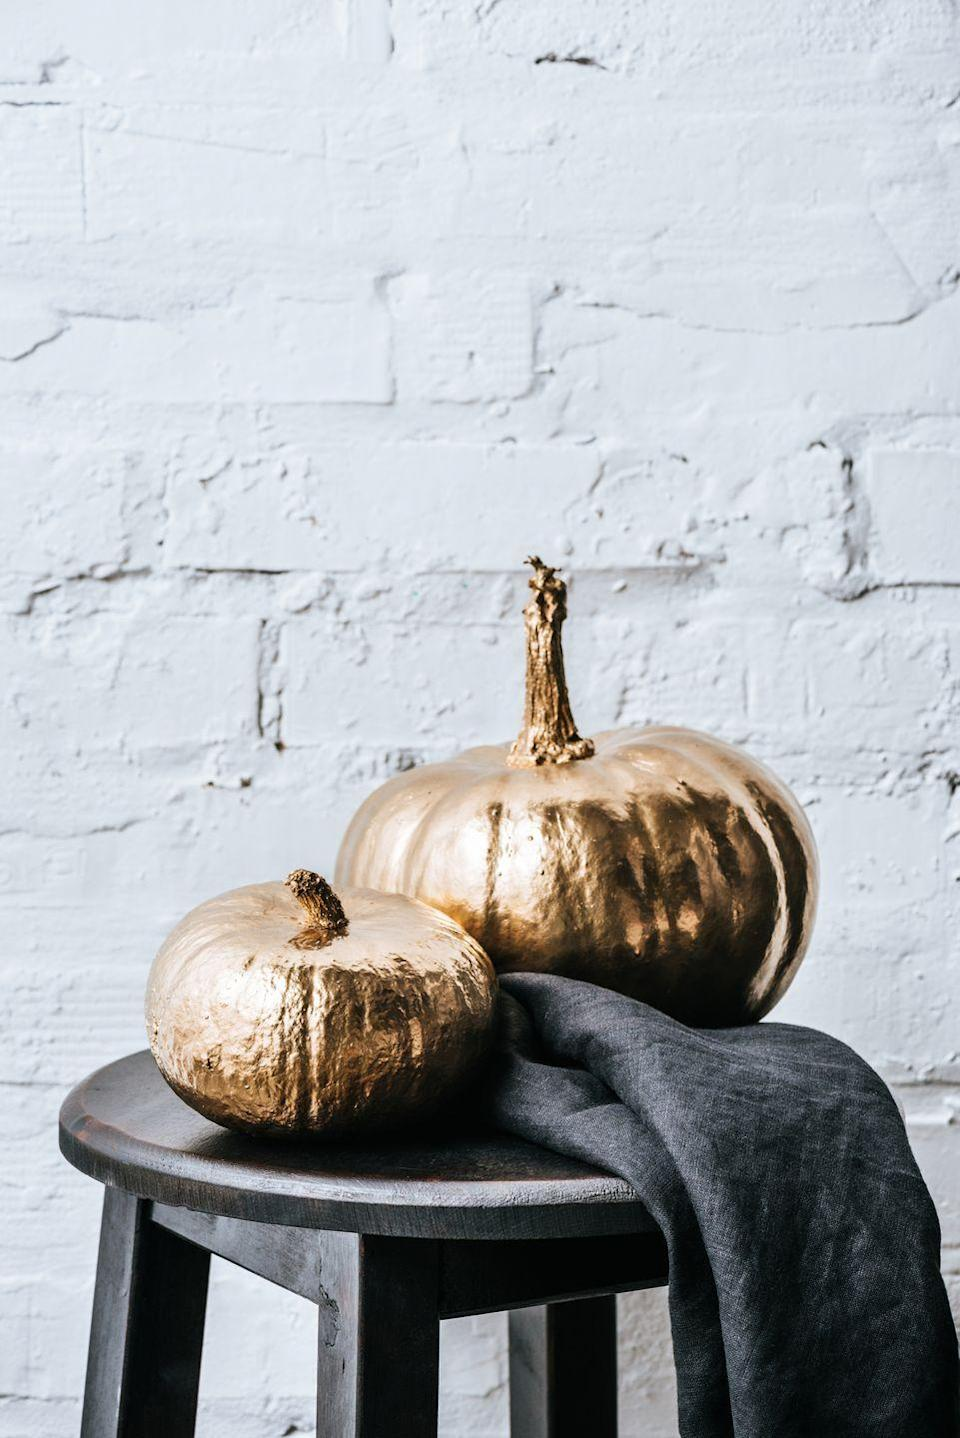 """<p>Who says jack-o-lanterns get to have all the fun? Use crafts like paints, glitter, glue or felt to get extra-creative with your fall pumpkin displays.</p><p>Check out some <a href=""""https://www.oprahmag.com/life/g28337071/easy-pumpkin-carving-ideas/"""" rel=""""nofollow noopener"""" target=""""_blank"""" data-ylk=""""slk:clever decorating and carving ideas here"""" class=""""link rapid-noclick-resp"""">clever decorating and carving ideas here</a>.</p>"""